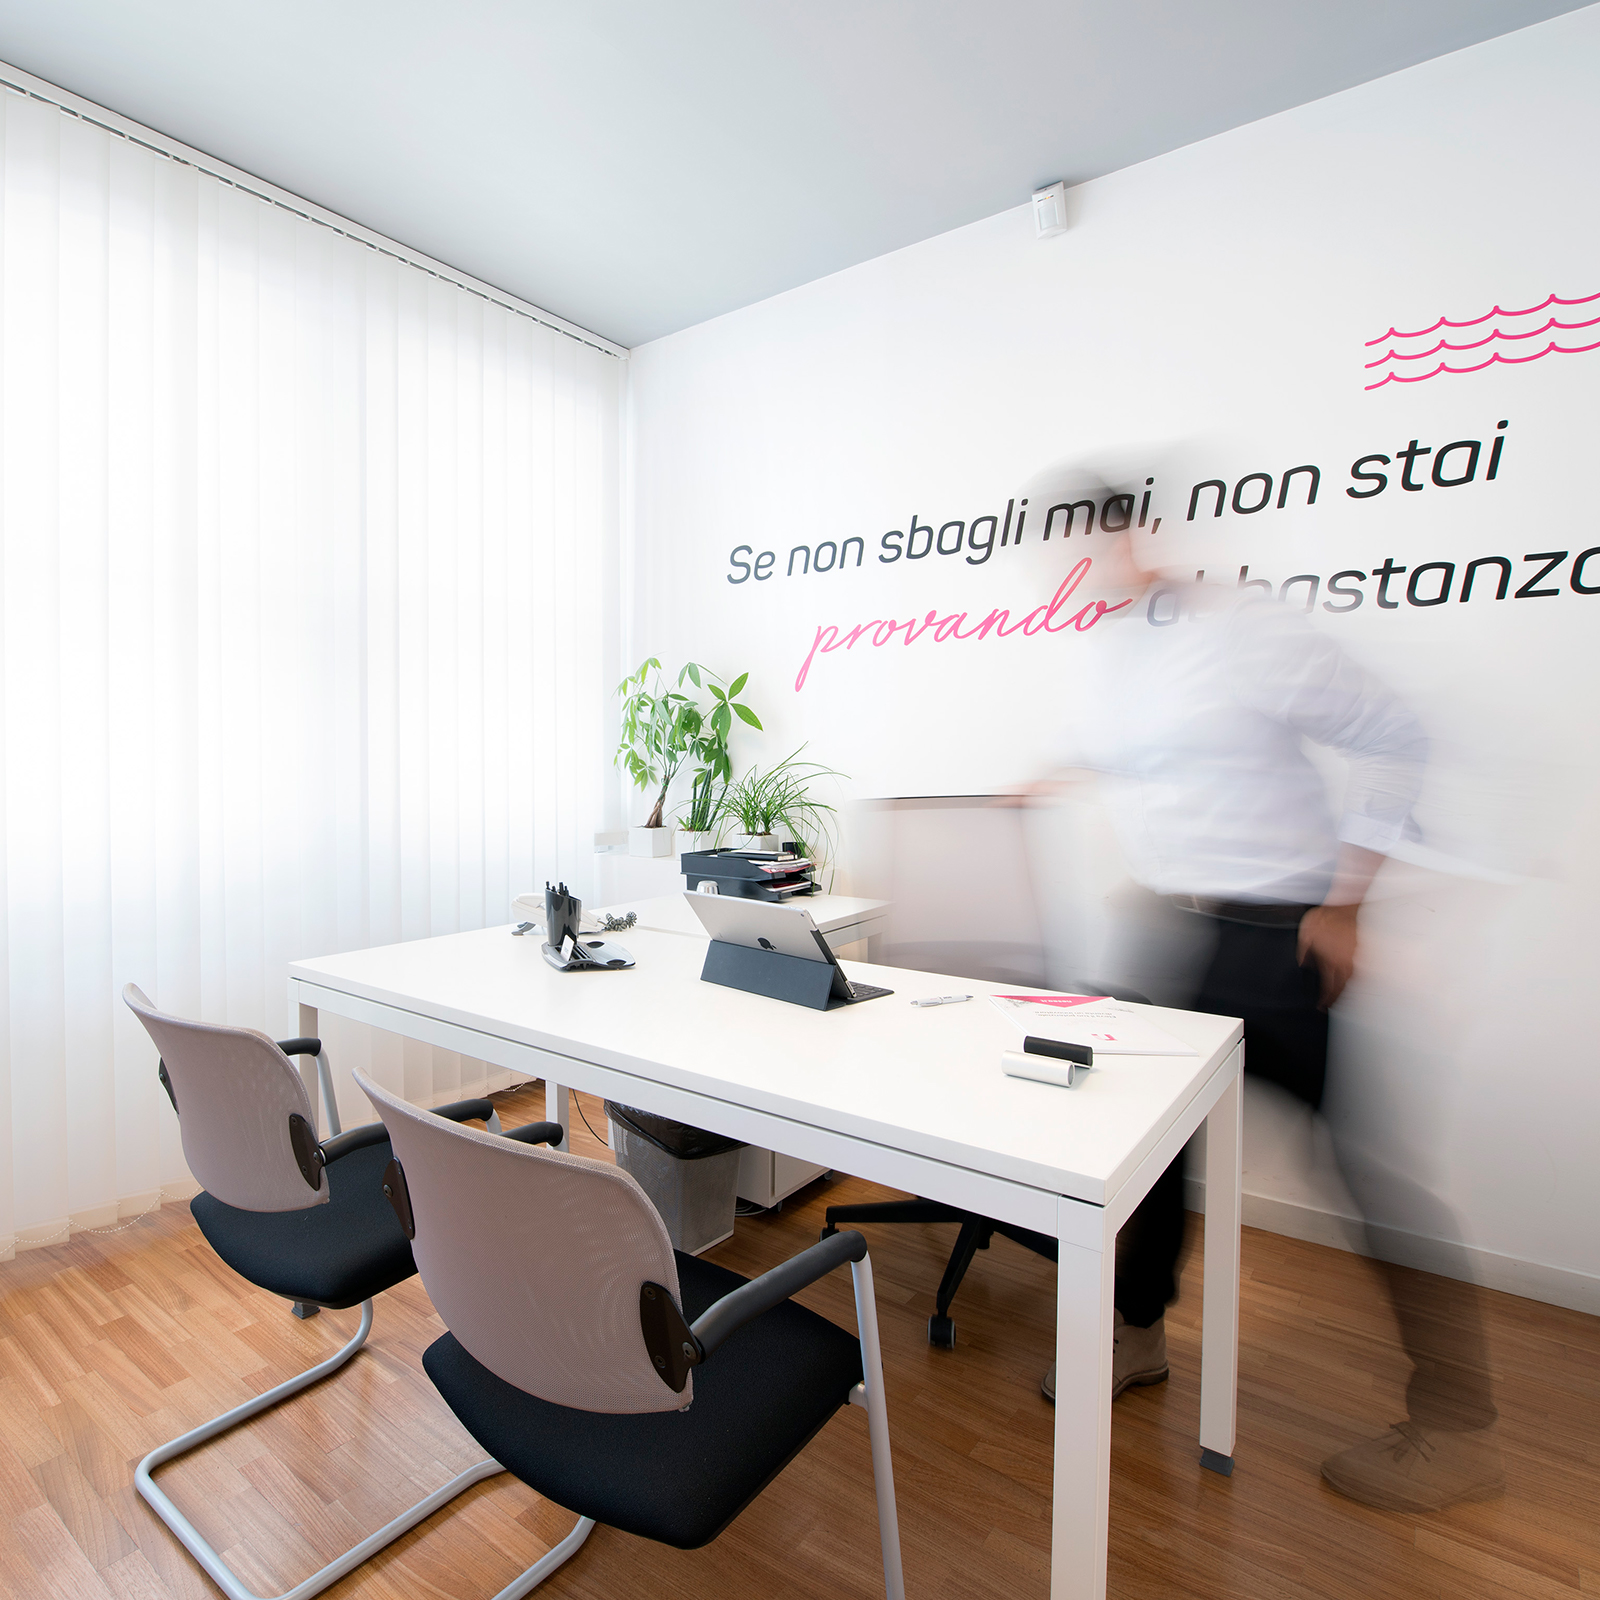 place design interior design branded spaces office